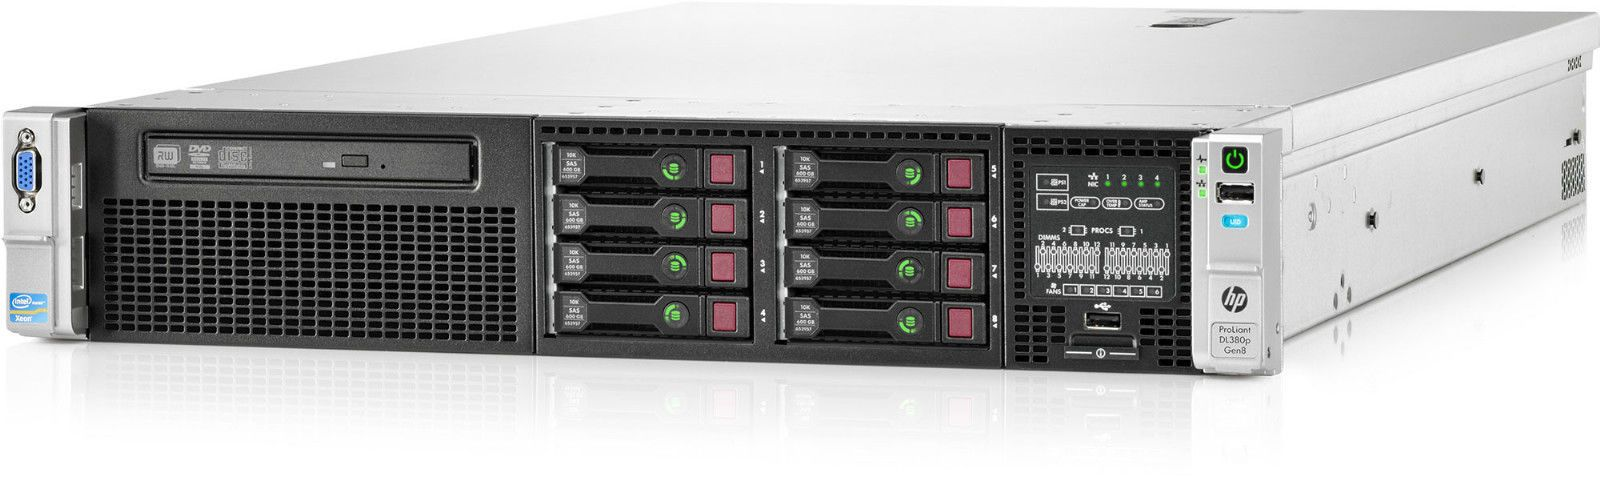 proliant dl380p g8 smartstart